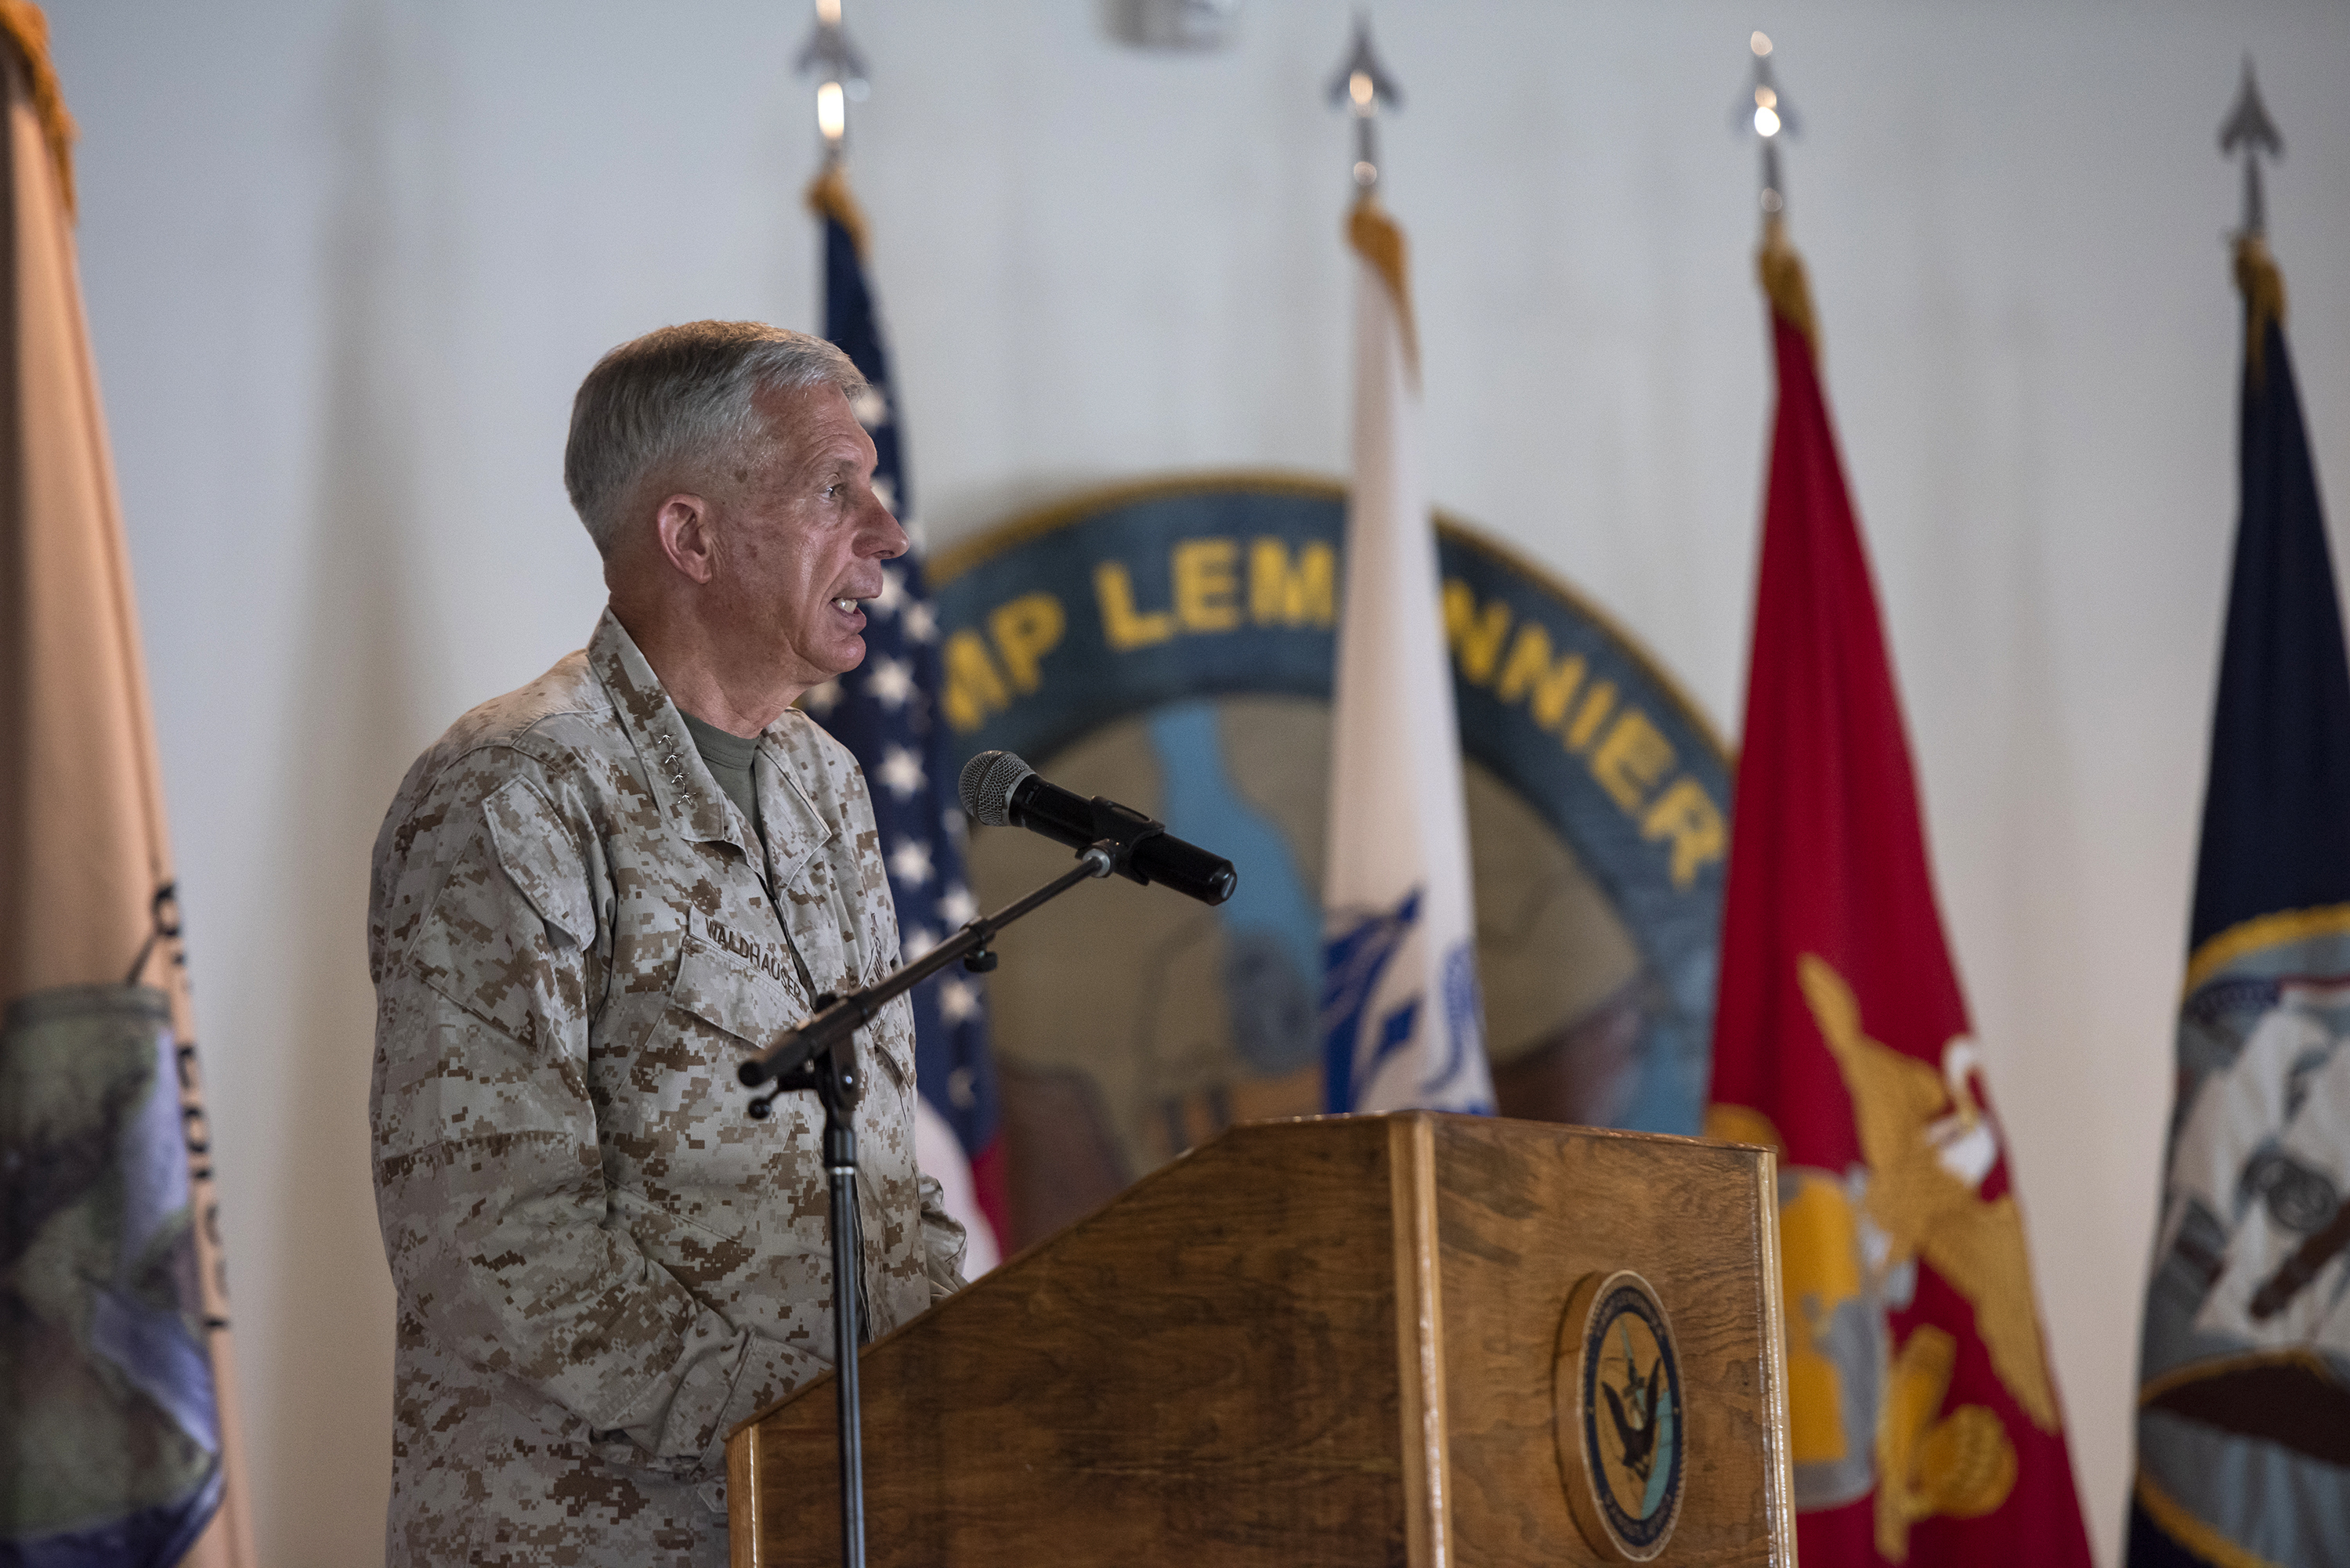 U.S. Marine Corps Gen. Thomas Waldhauser, commander of United States Africa Command, speaks to service members serving for Combined Joint Task Force Horn of Africa on Camp Lemonnier, Djibouti, May 1, 2018. Waldhauser presided over the transfer of authority for CJTF-HOA from Maj. Gen. David Furness to U.S. Army Brig. Gen. William Zana. (U.S. Air National Guard photo by Master Sgt. Sarah Mattison)